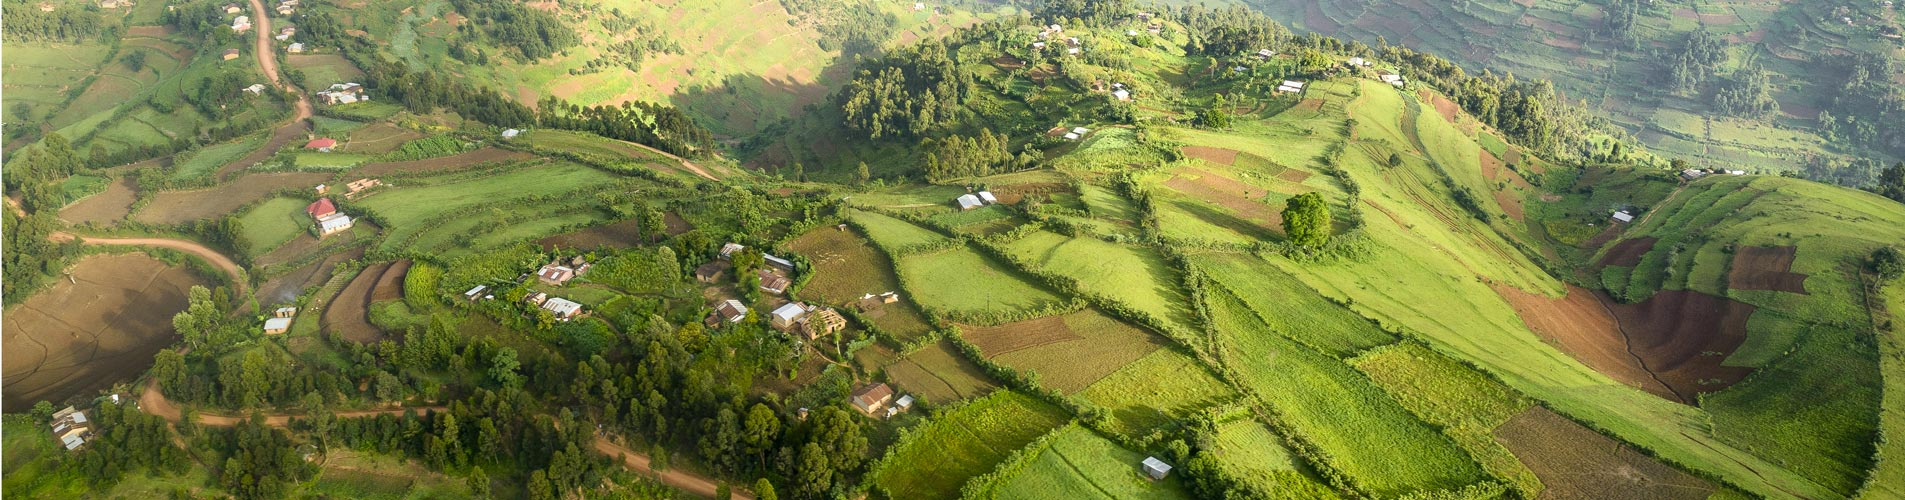 Rwanda Safaris Fertile Valley